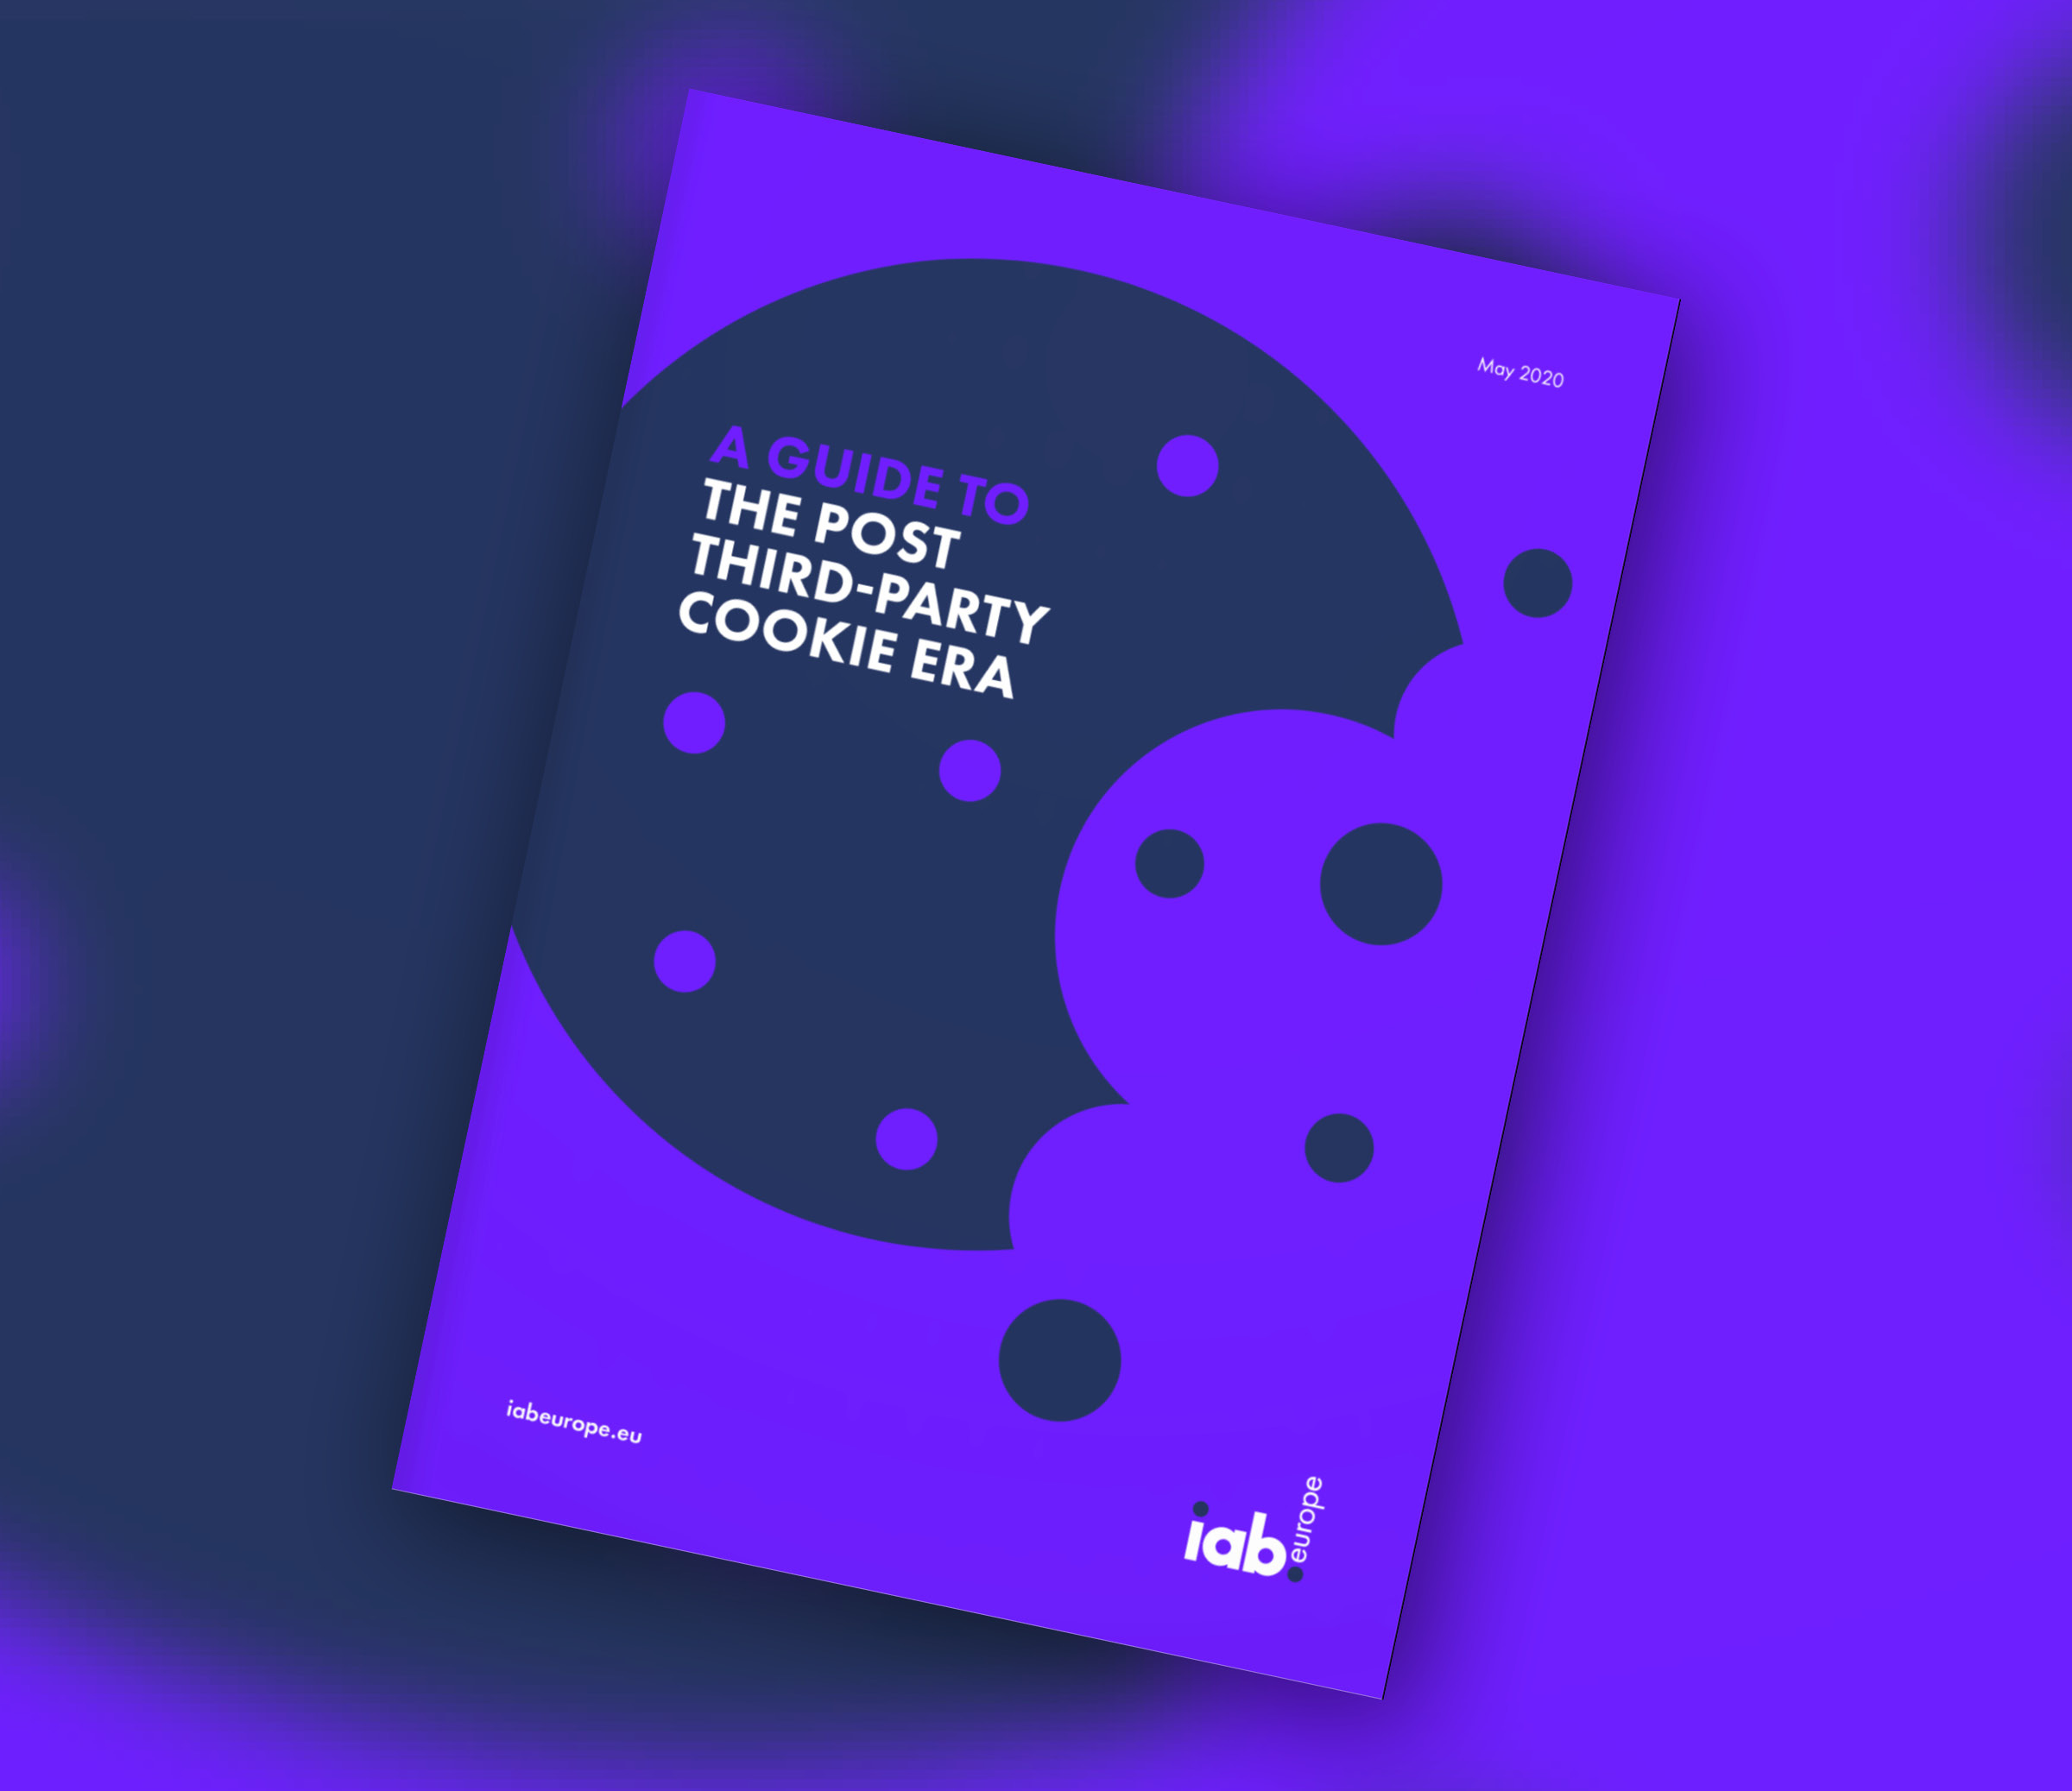 IAB: A Guide To The Post Third-Party Cookie Era